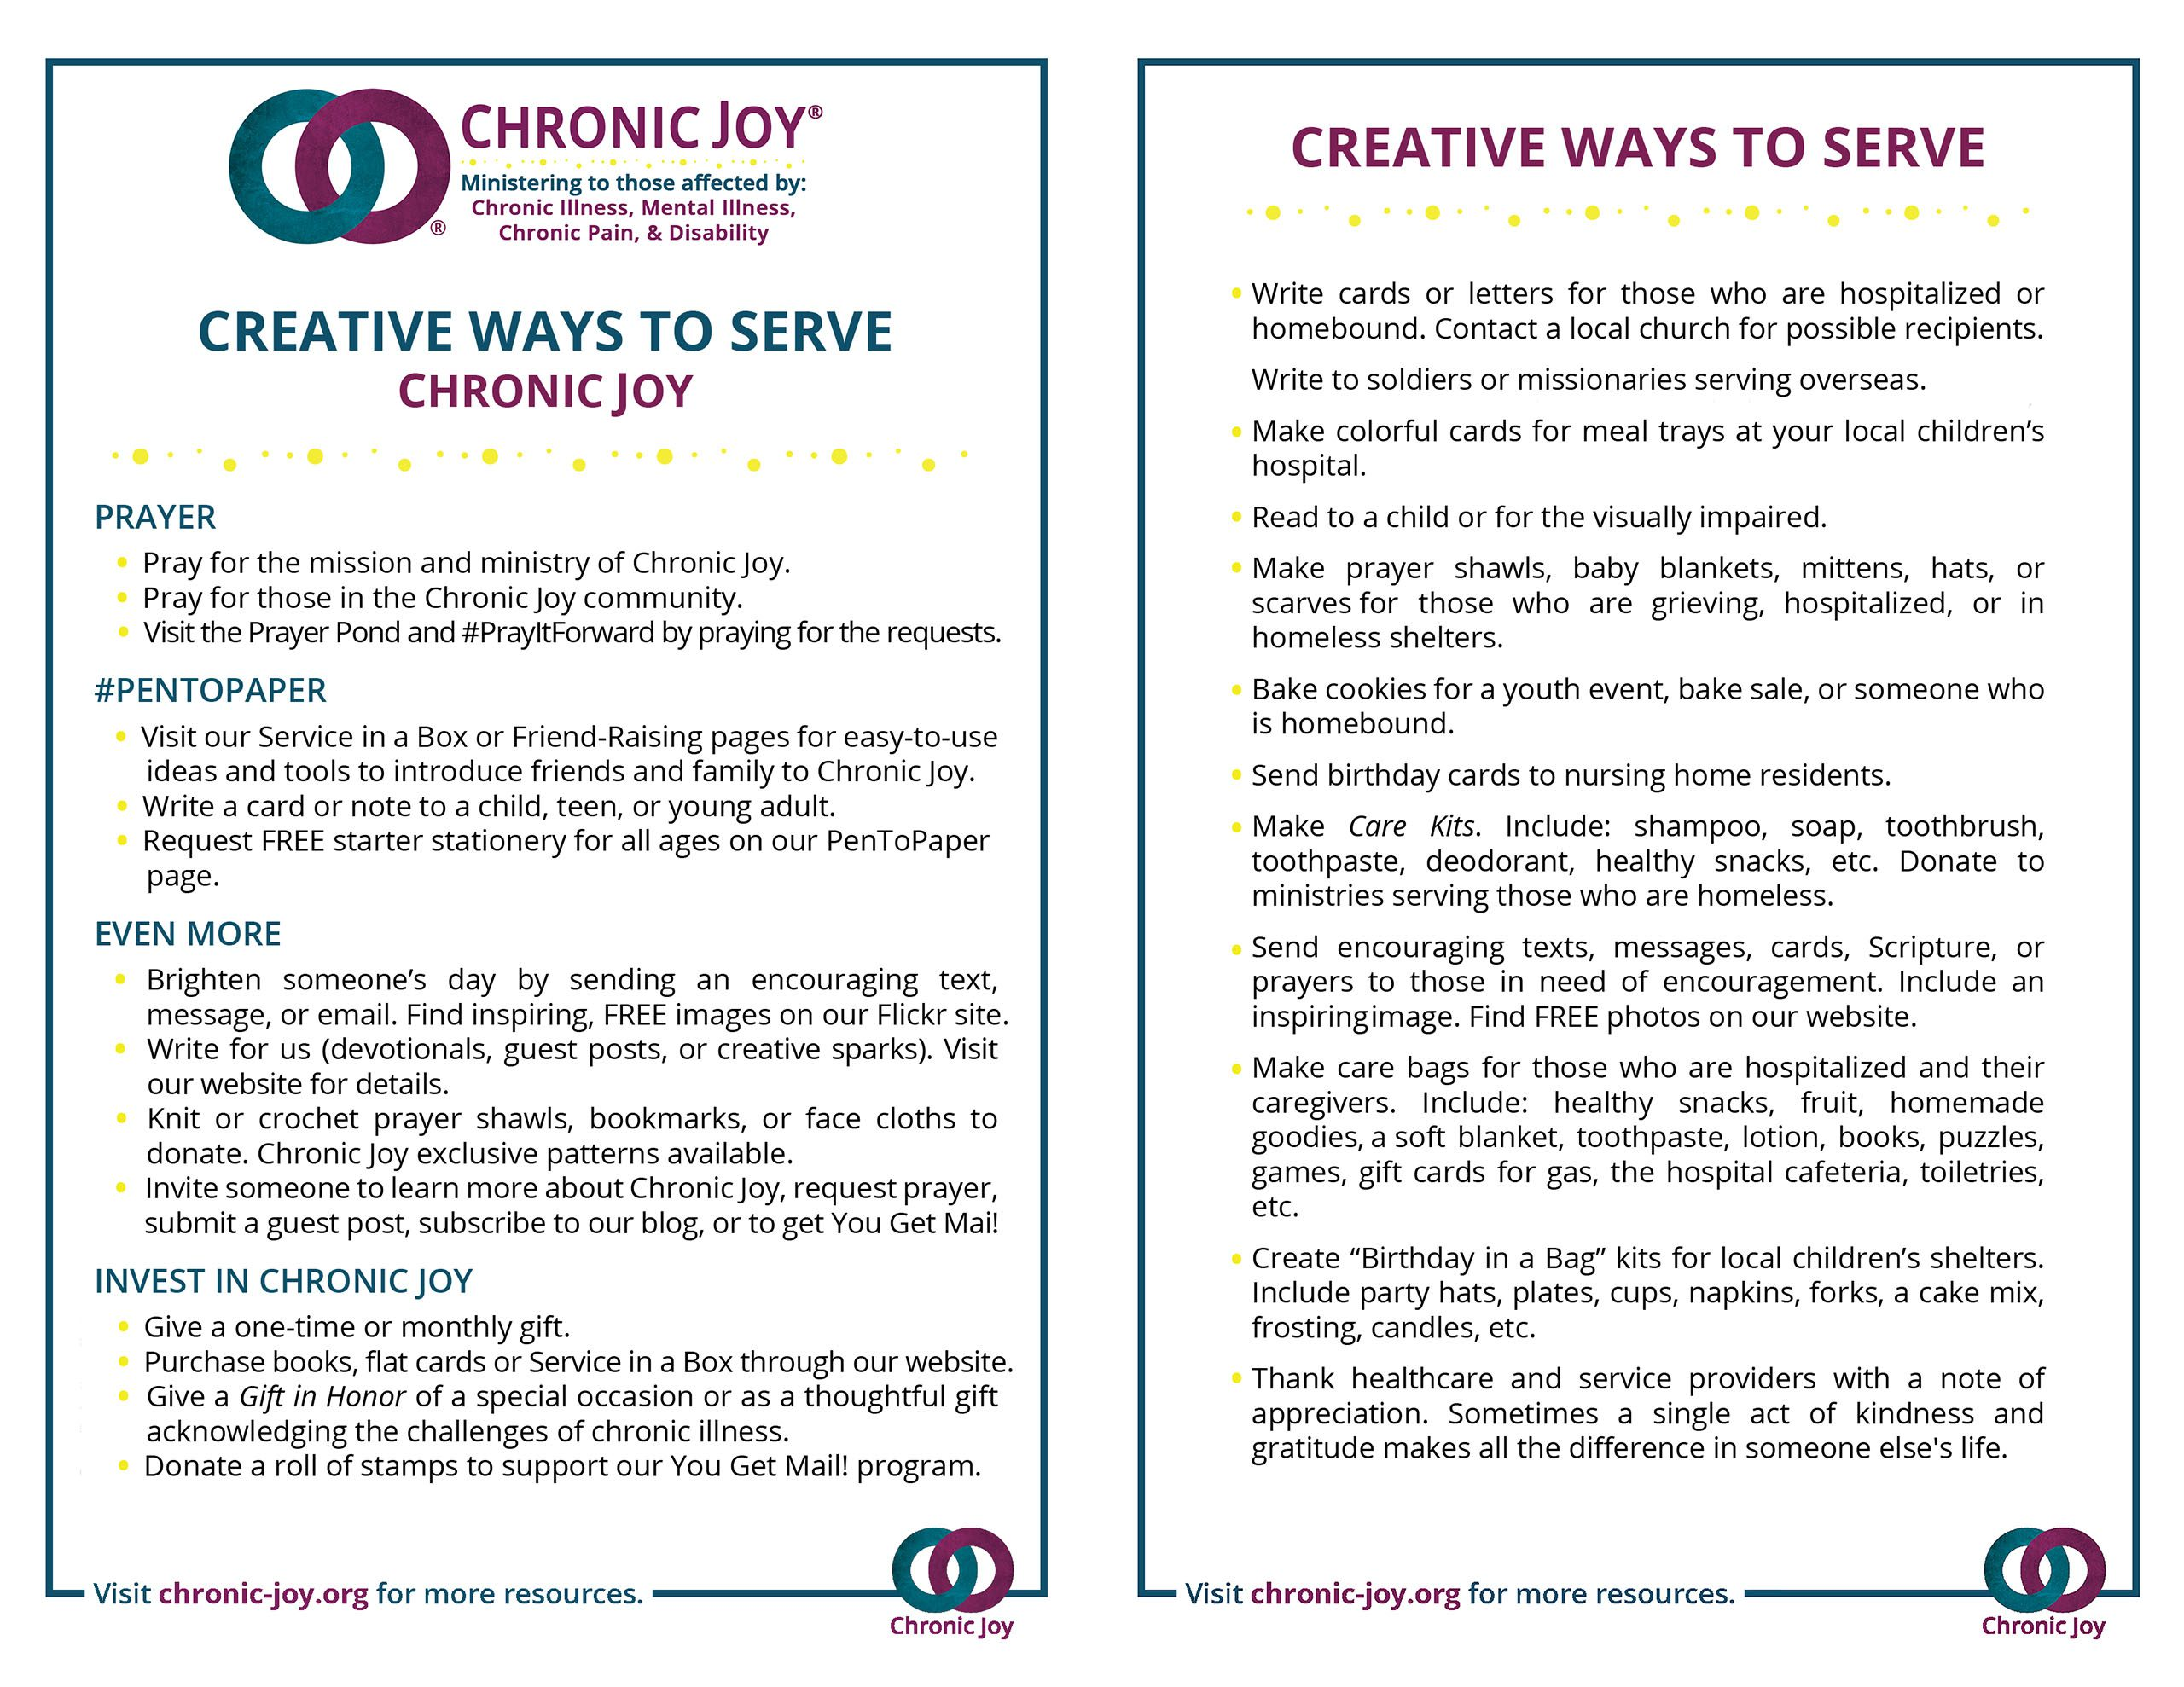 Creative Ways to Serve